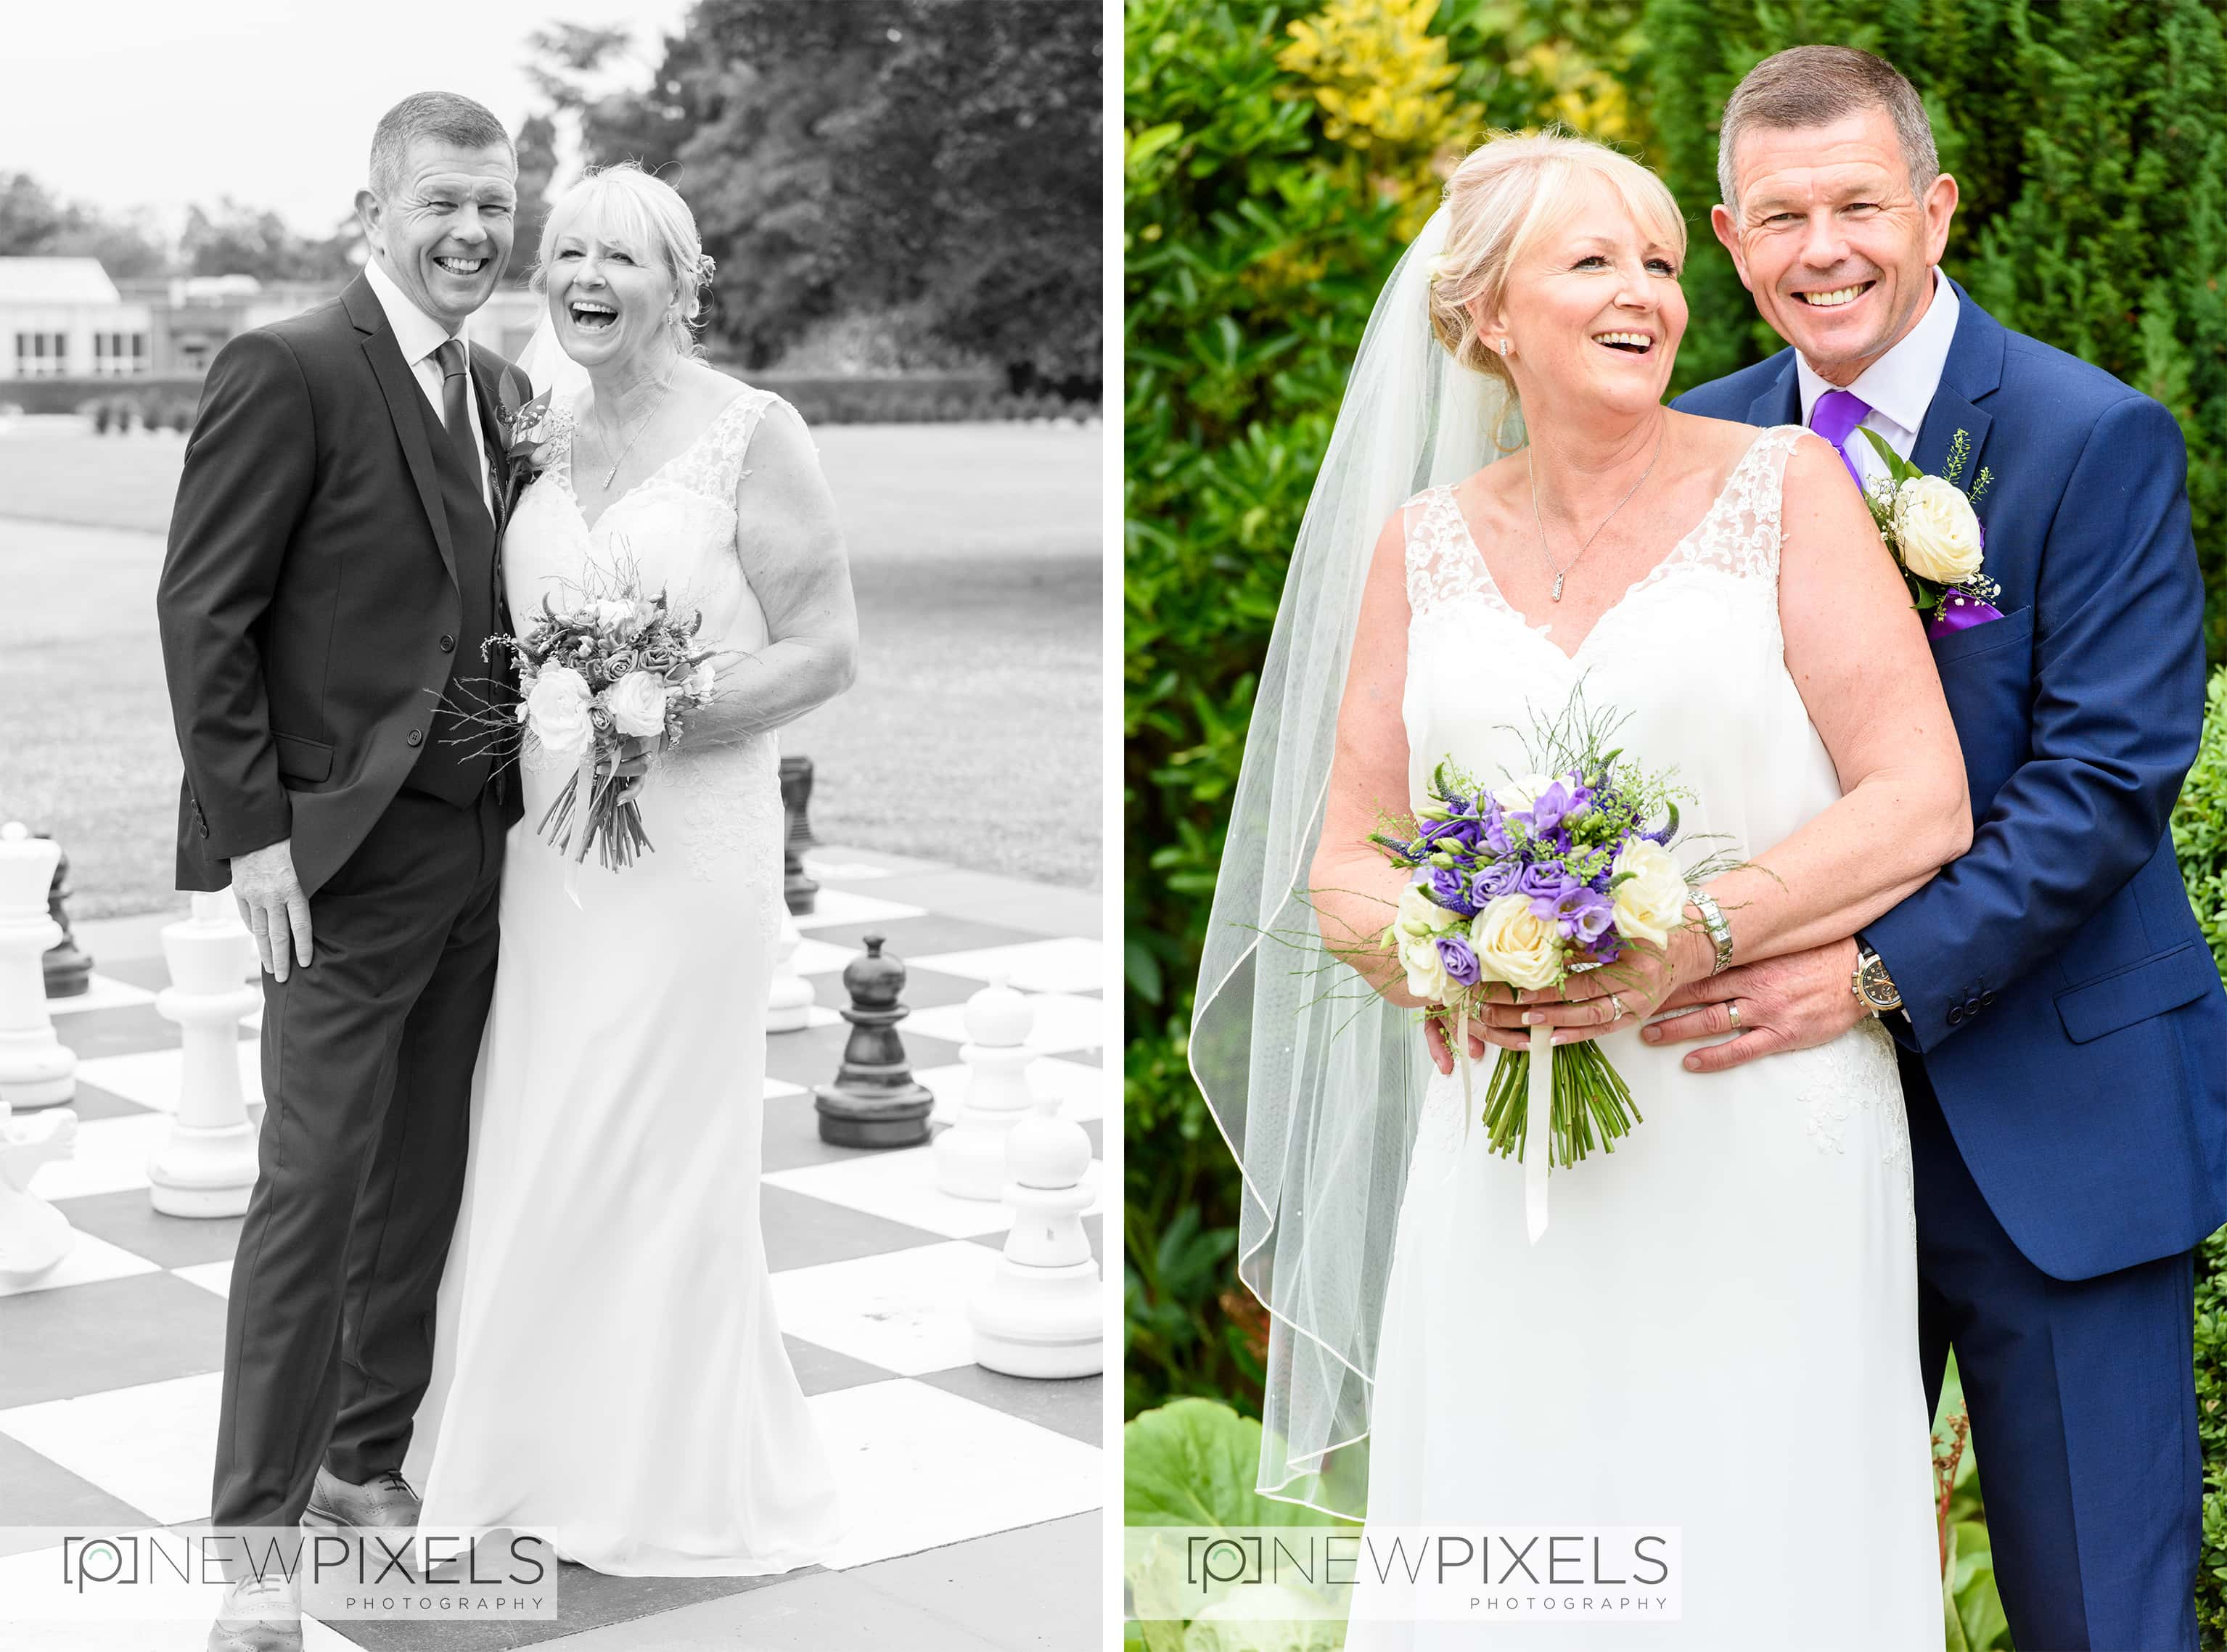 downhall wedding photographer16